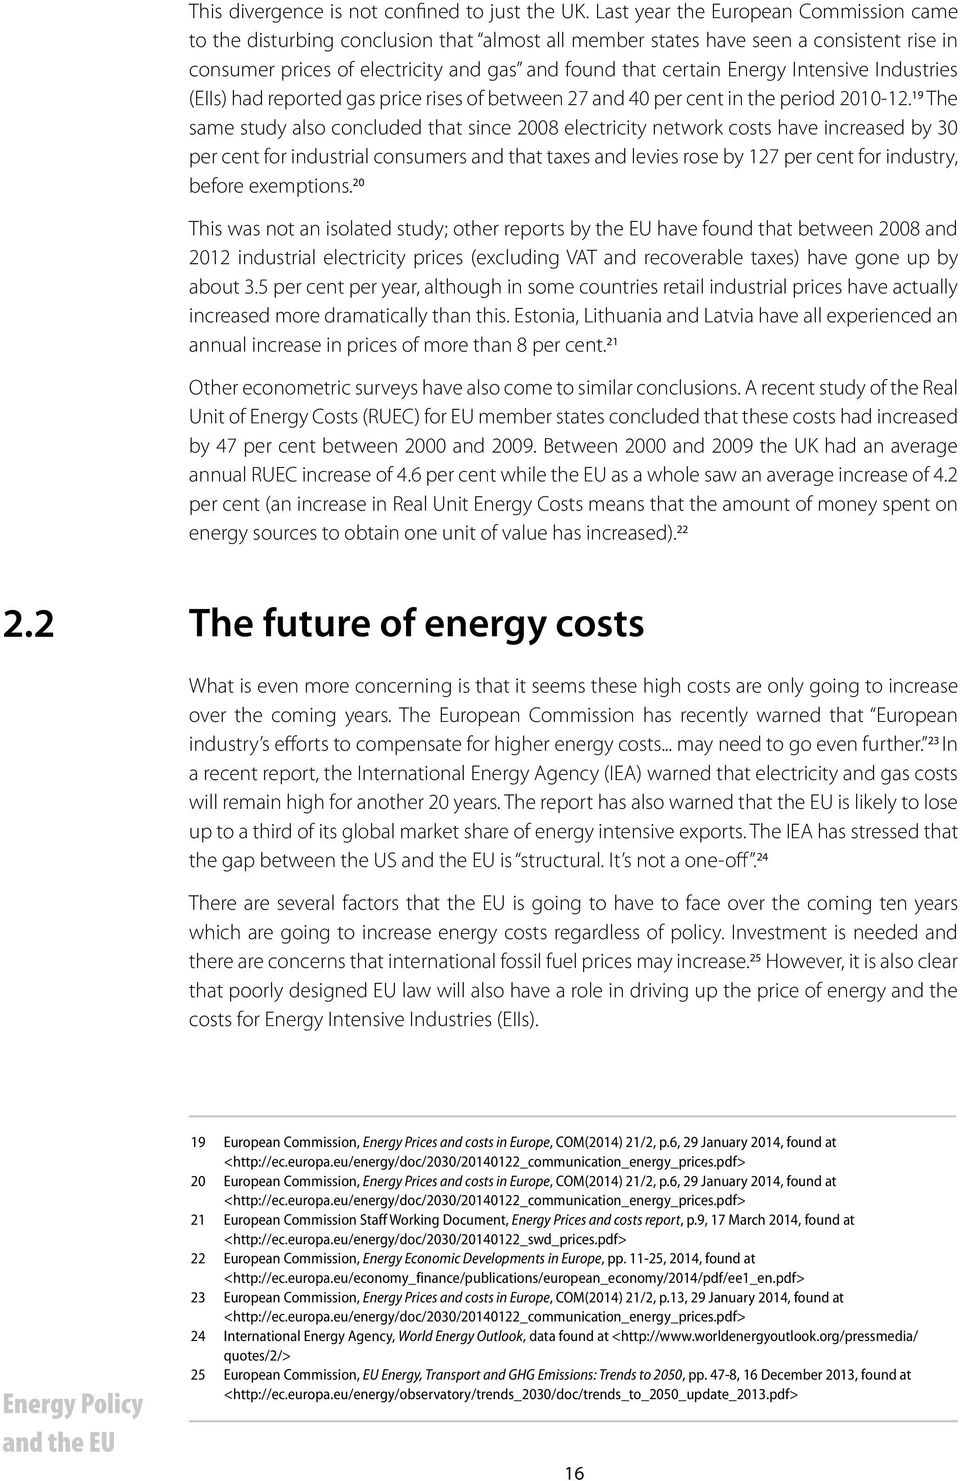 Intensive Industries (EIIs) had reported gas price rises of between 27 and 40 per cent in the period 2010-12.